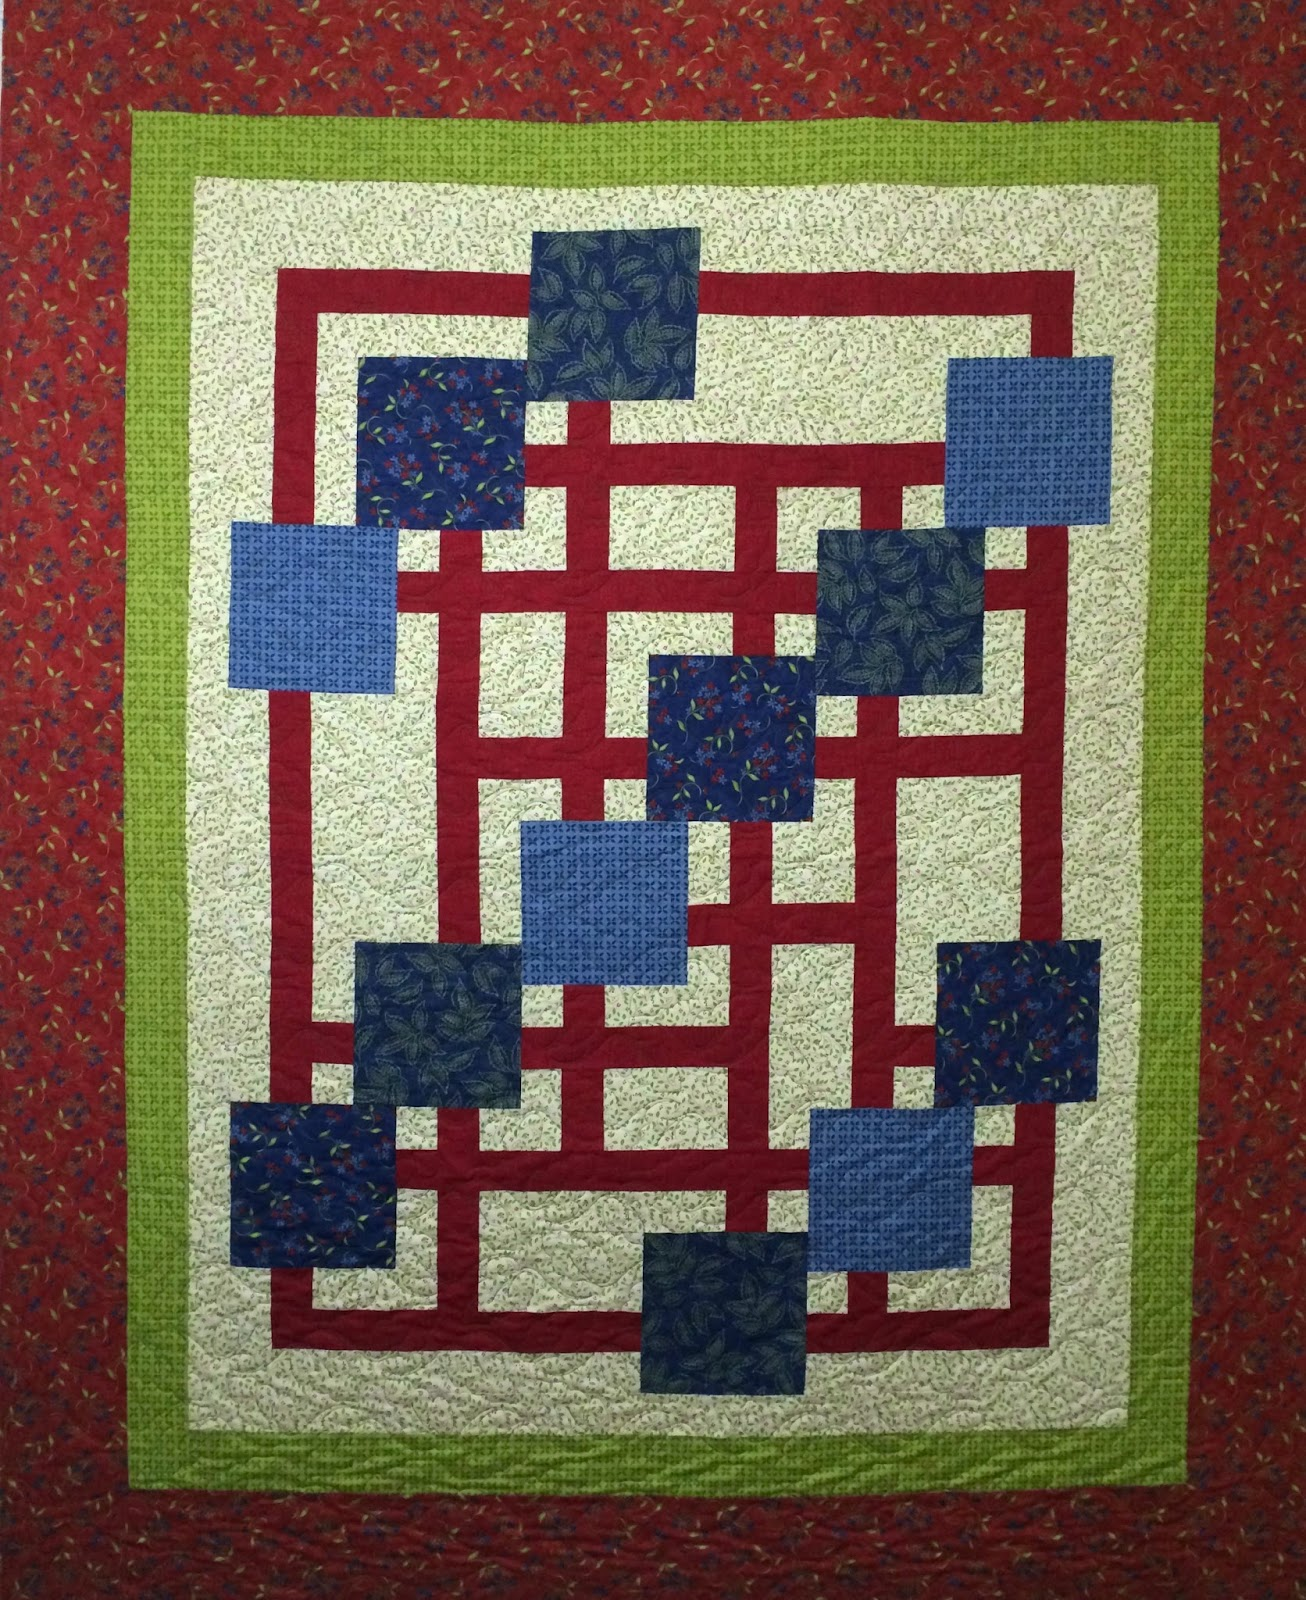 Kathleen Brimberry's Floating Squares Quilt